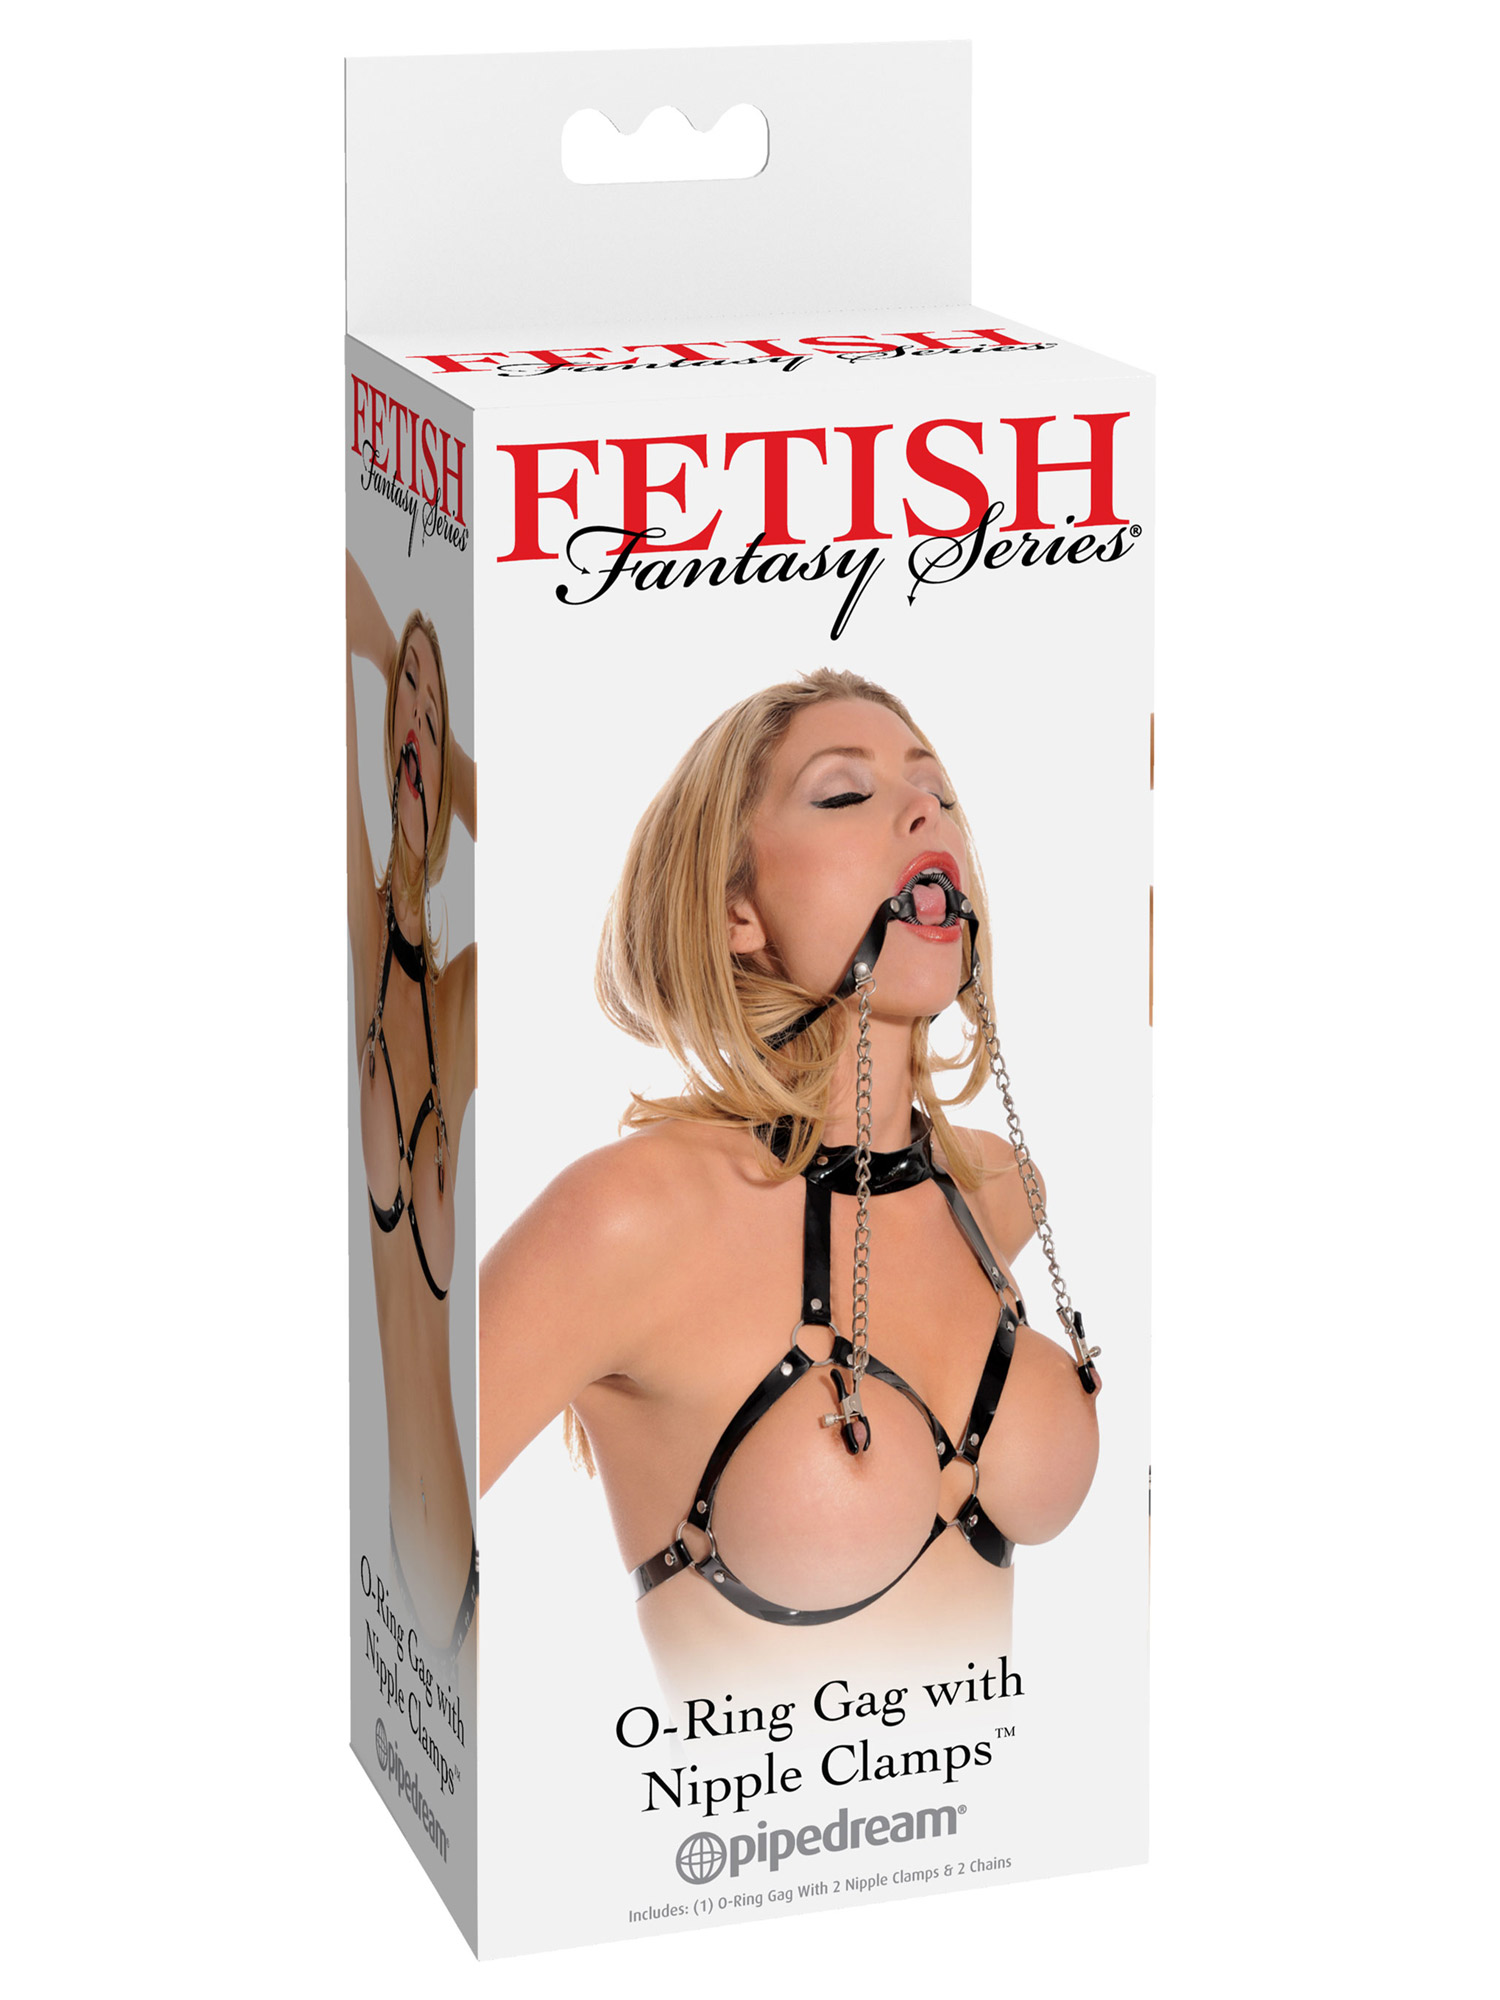 Fetish Fantasy - O-Ring Gag with Nipple Clamps